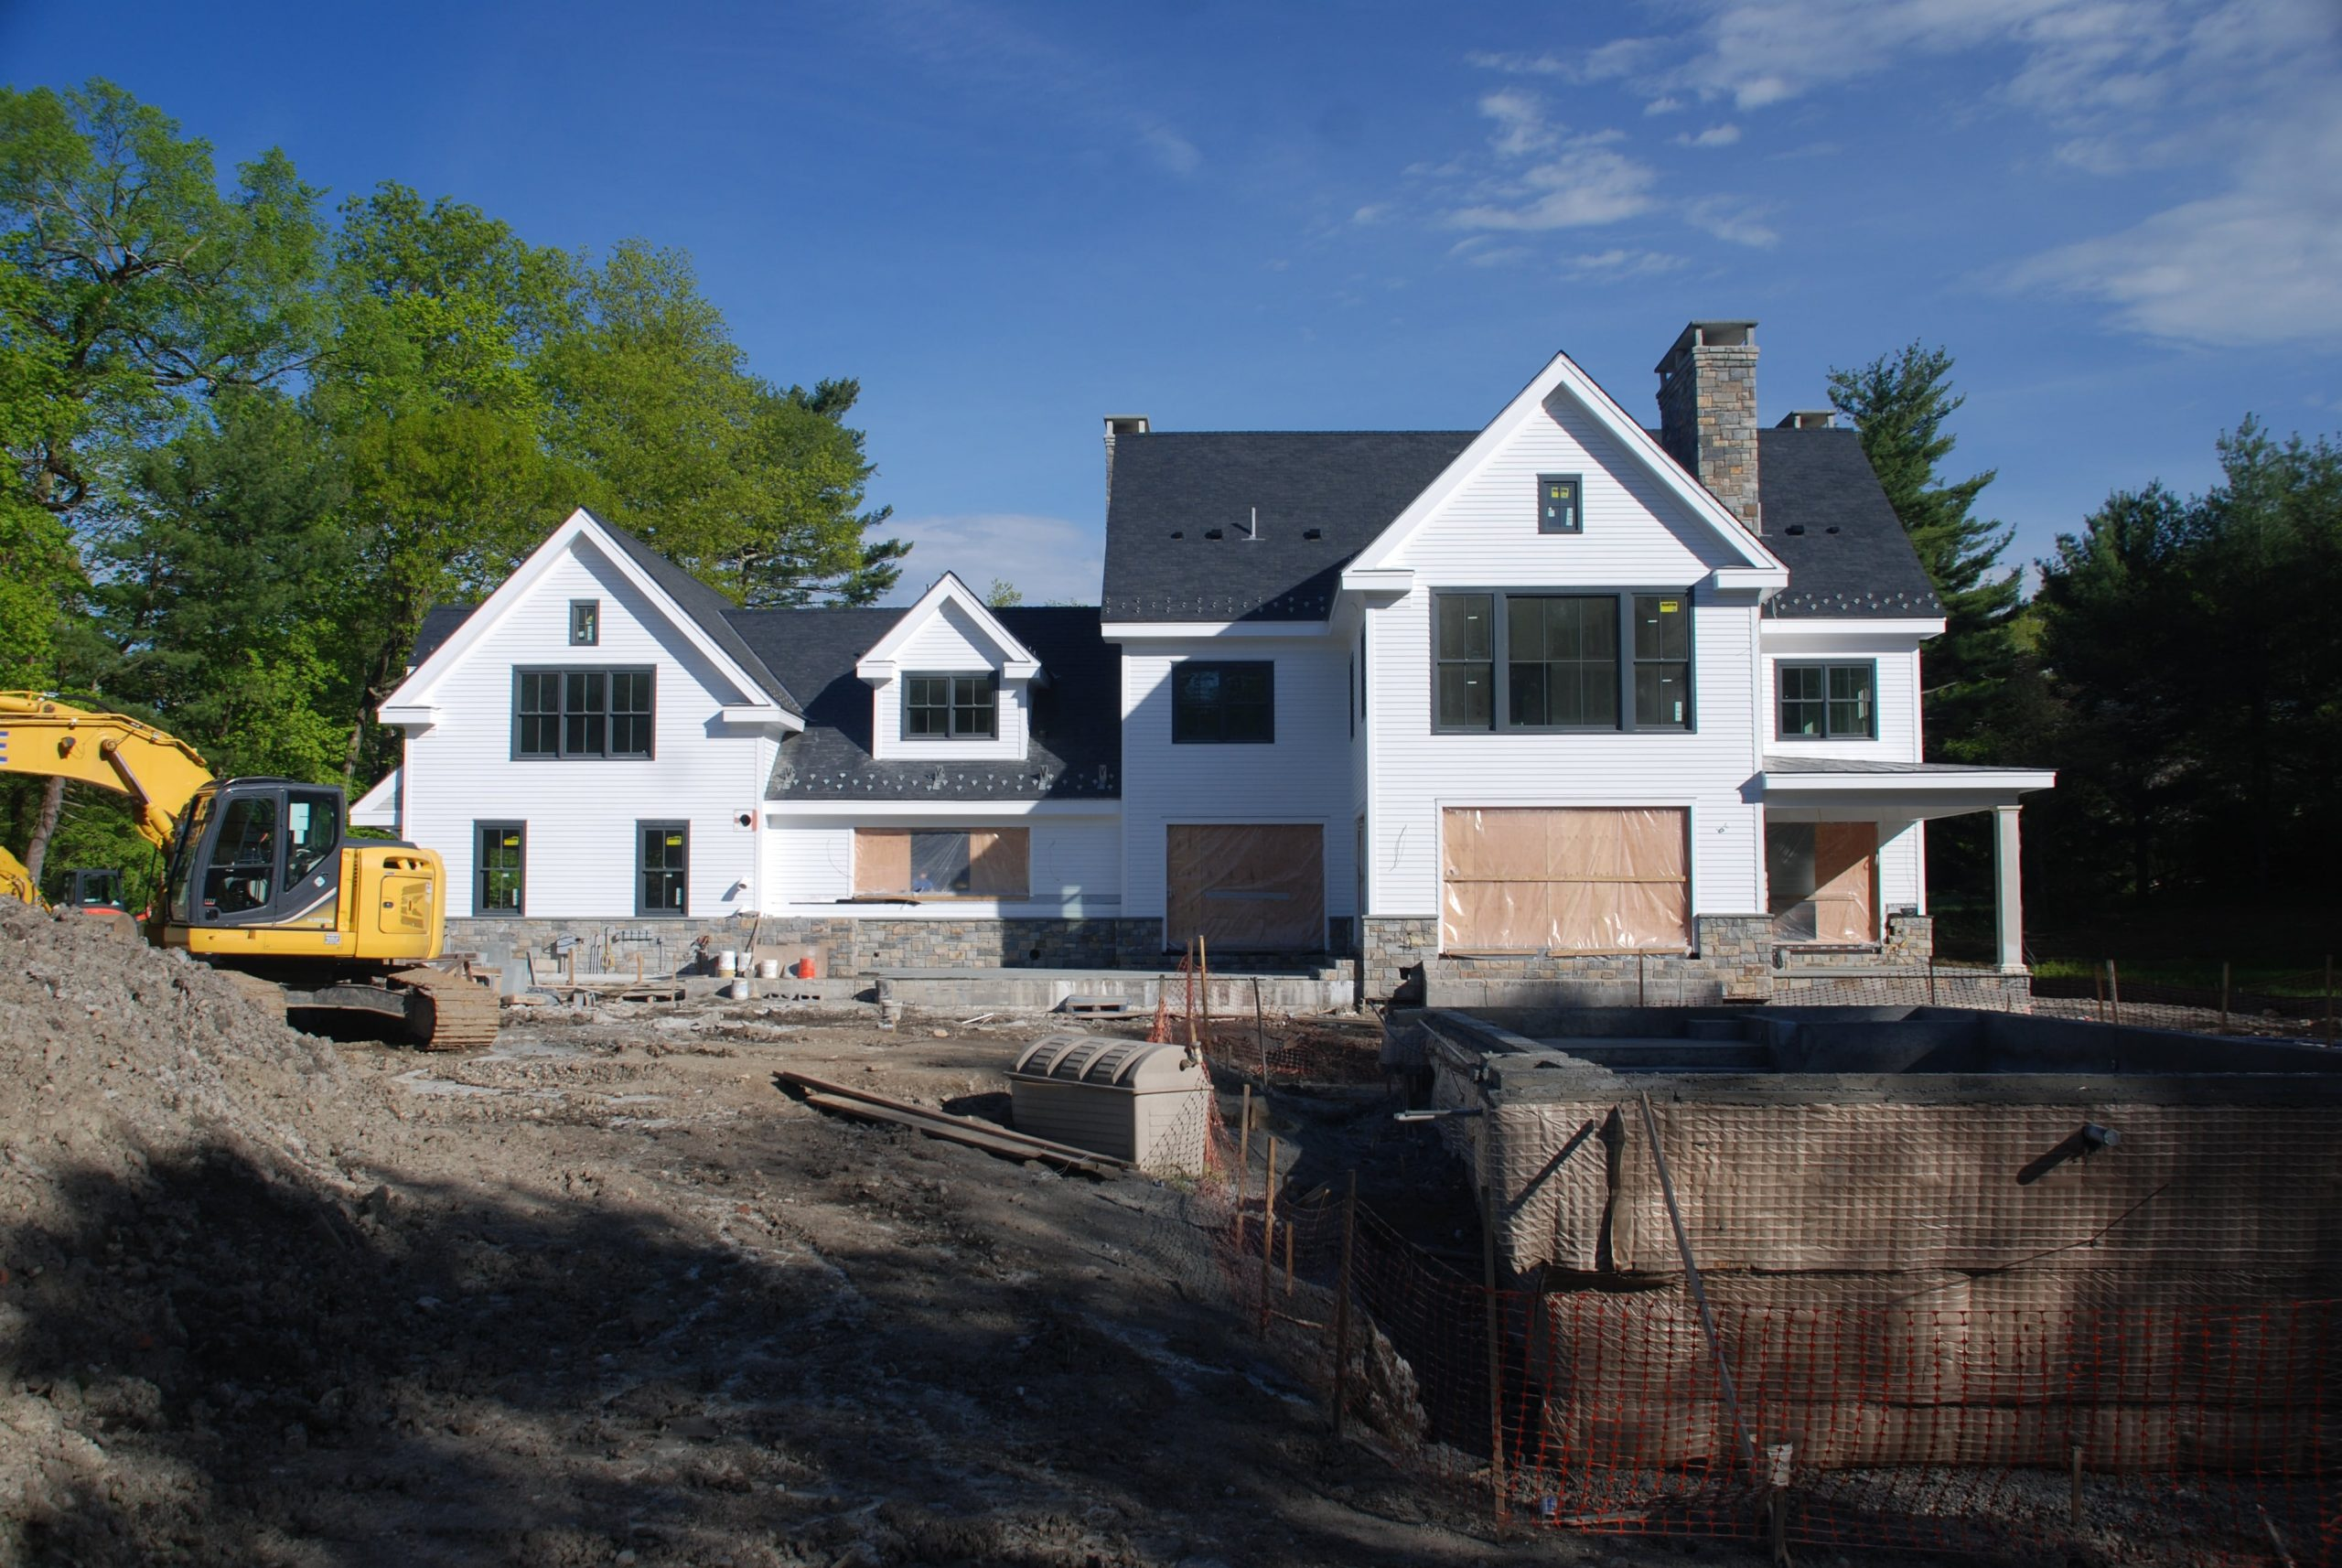 9 greenwich ct home construction in progress